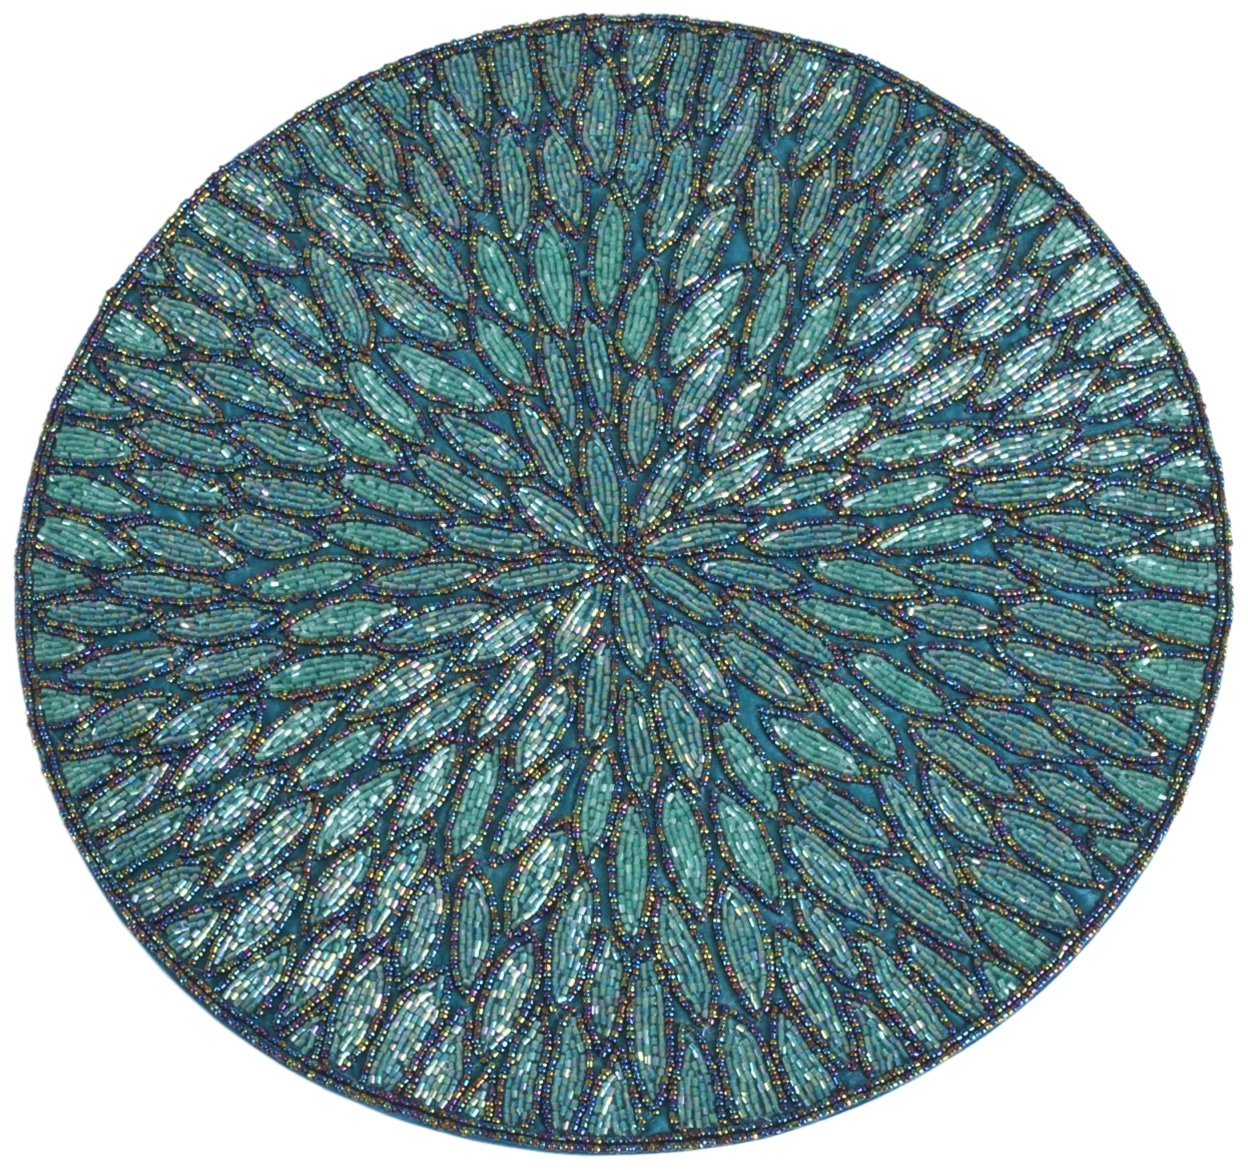 SARO LIFESTYLE 3517.TE15R Round Placemat, 15-Inch, Teal(Sold as Pack of 4)